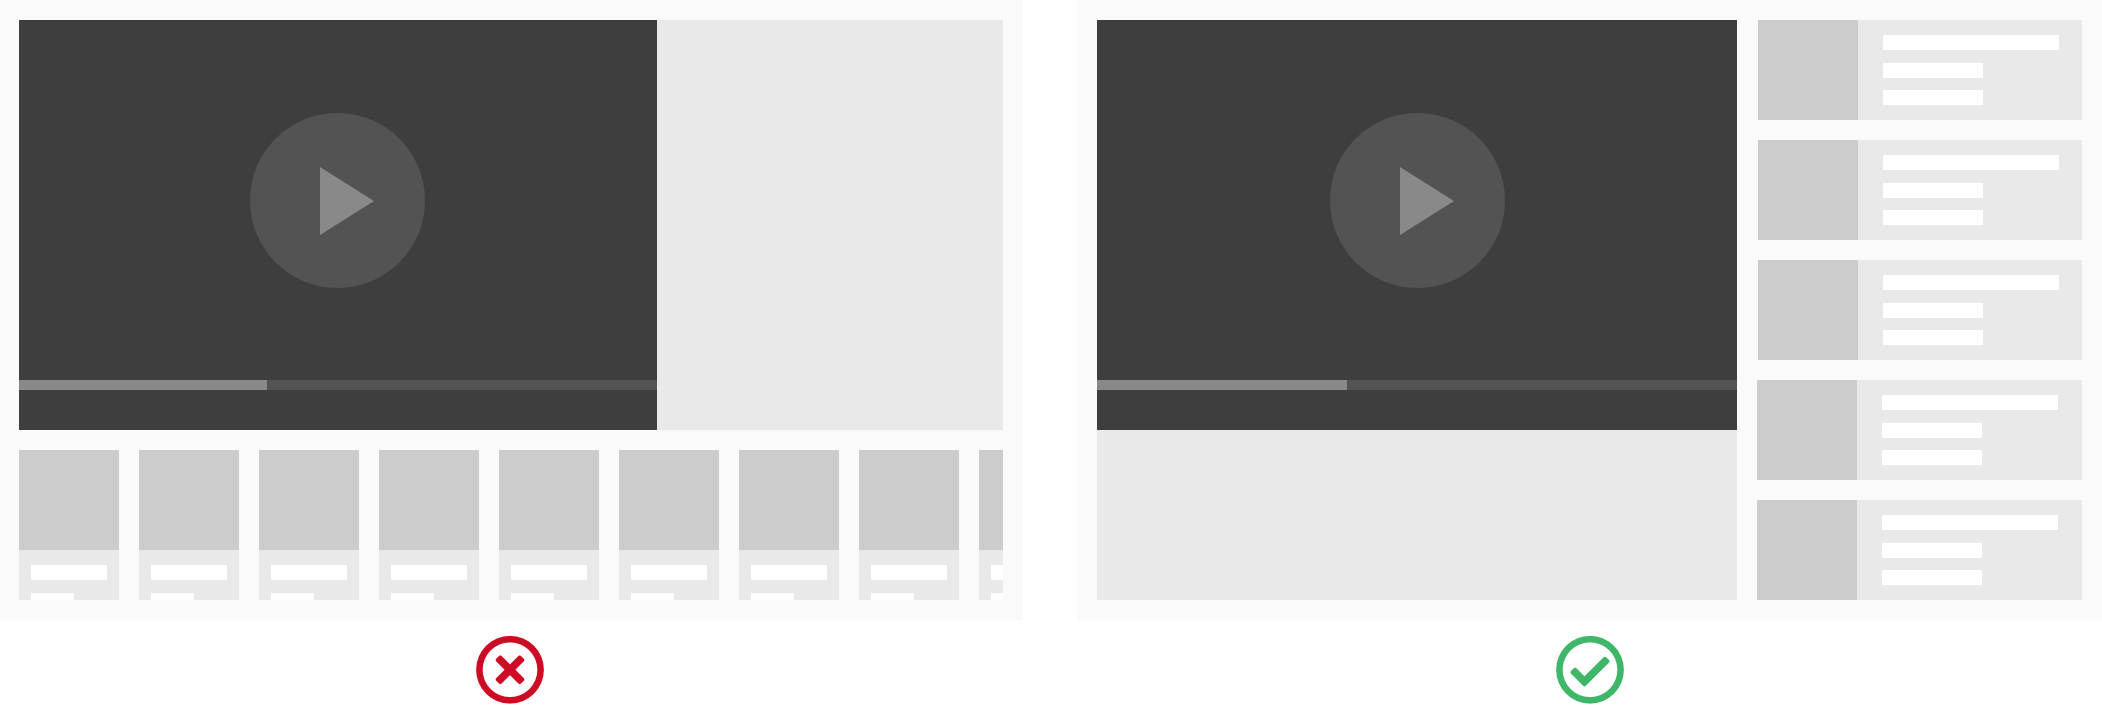 Vertical vs horizontal scrolling